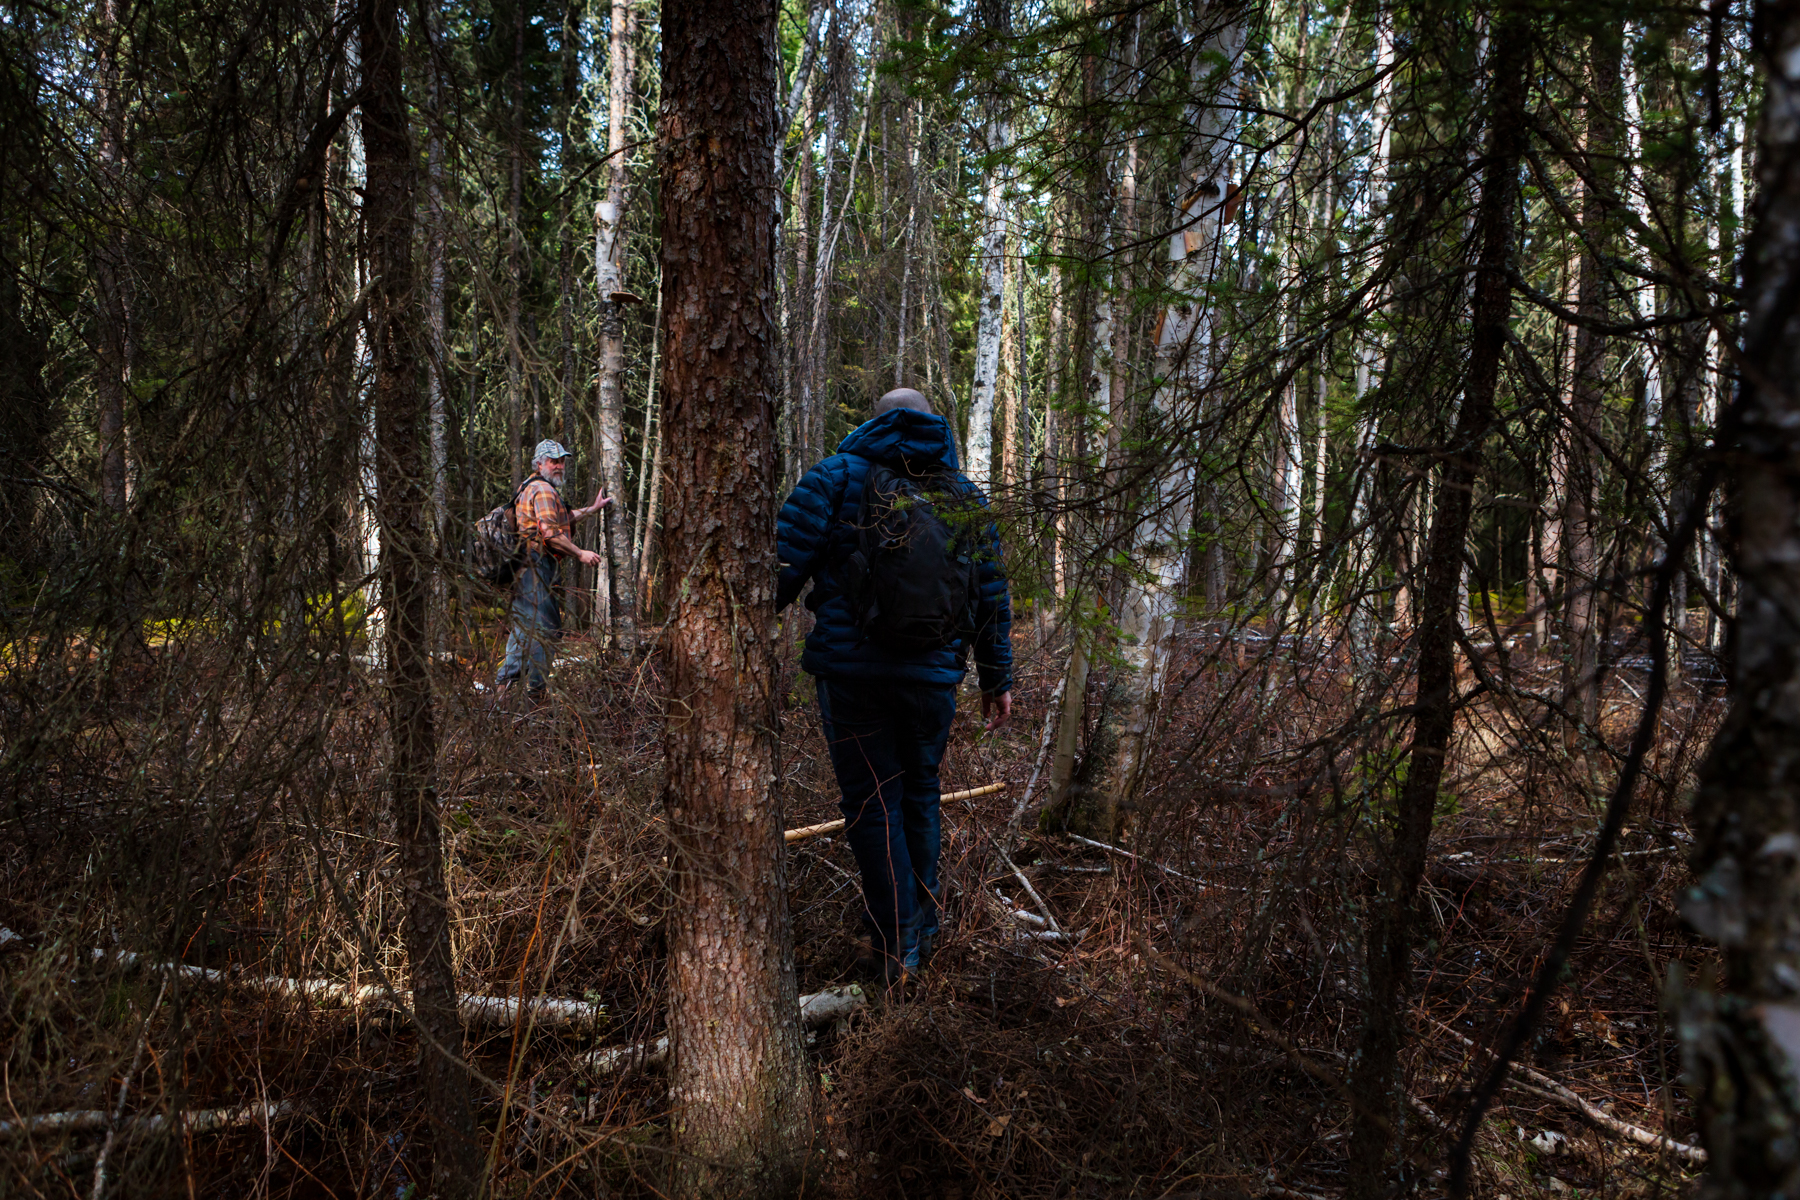 two men off-trail hiking through forest